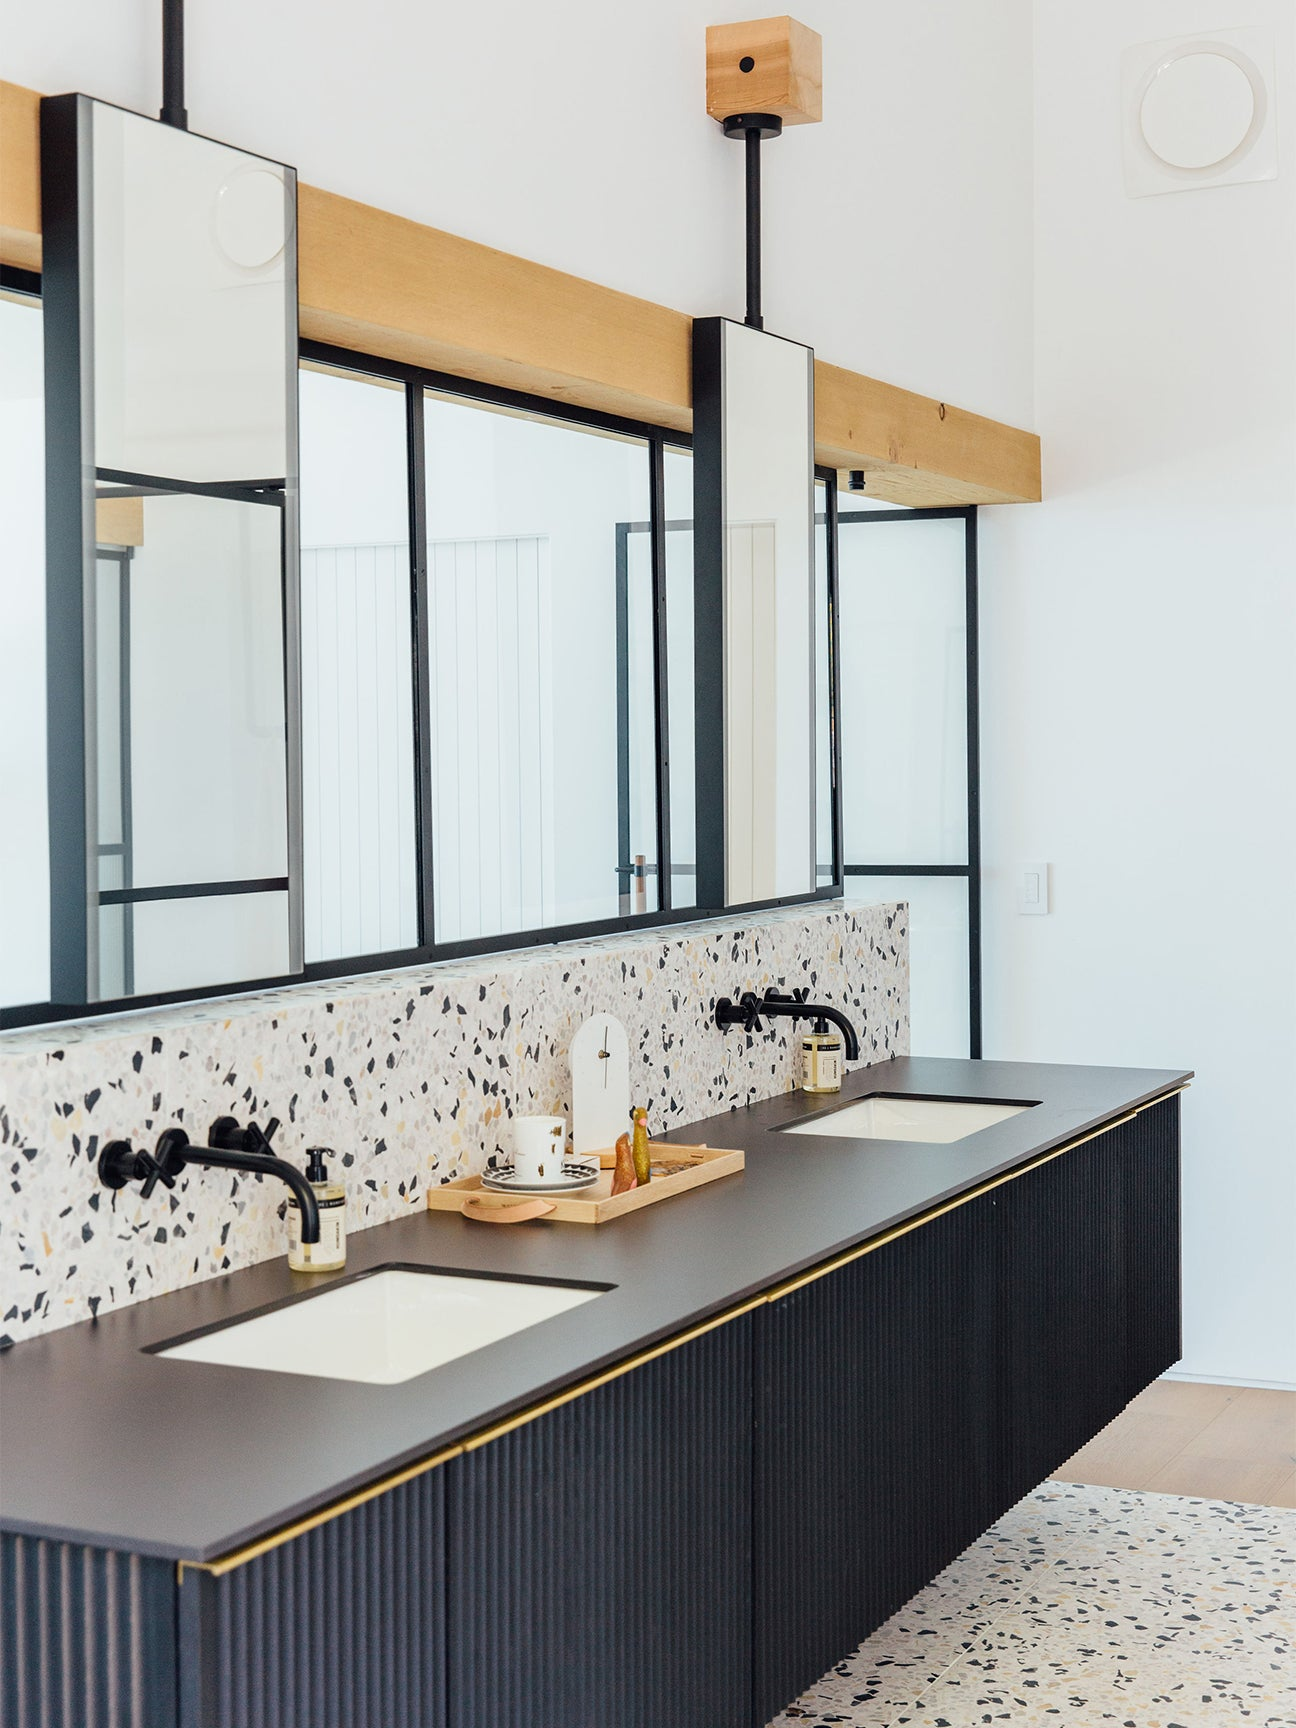 This Terrazzo Tile Bathroom By The Brown Studio Makes A